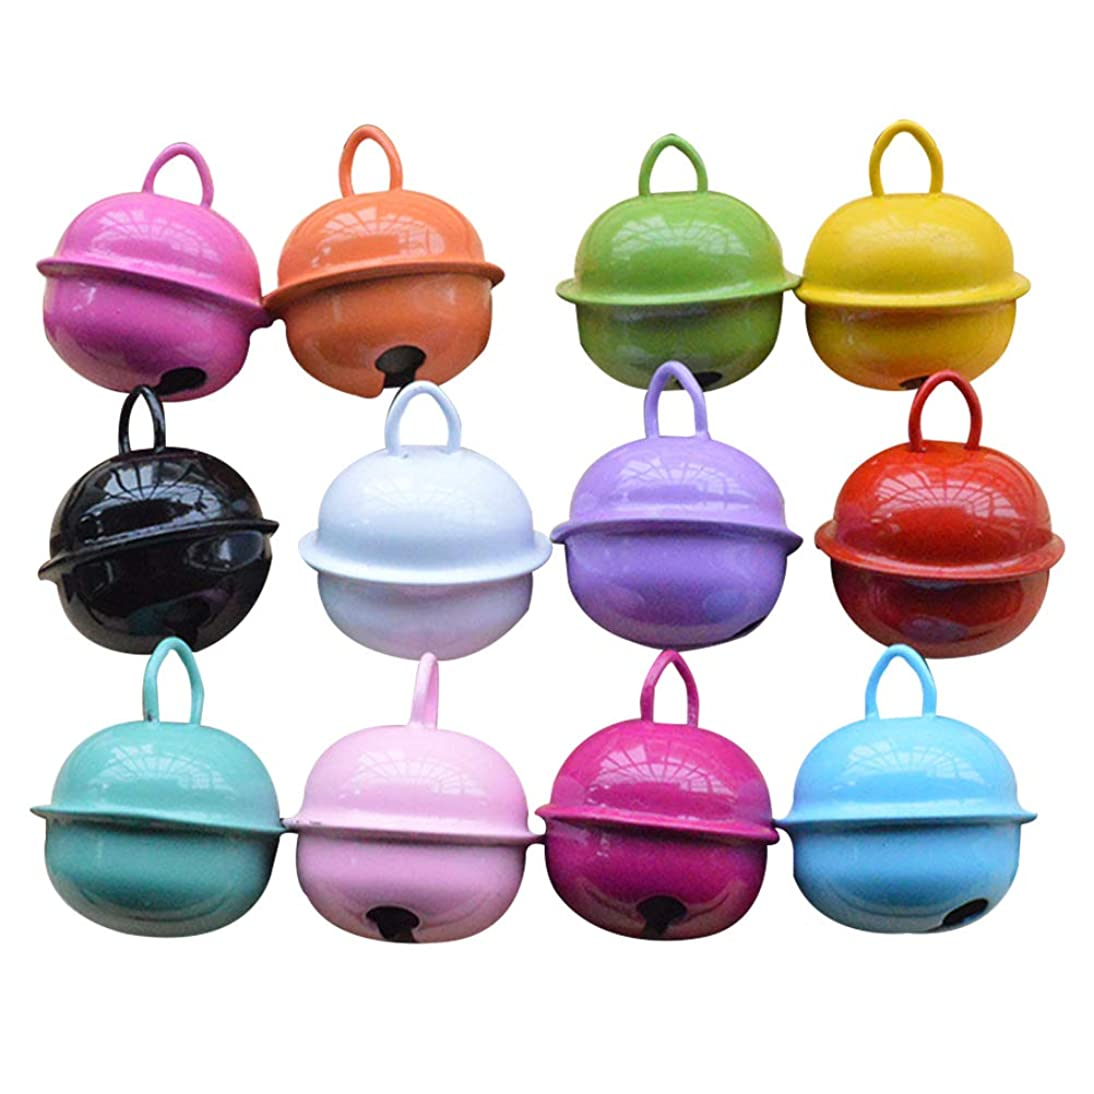 Vosarea Christmas DIY Crafts,30pcs 22mm Colorful Painted Jingle Bell Metal Round Mini Bells Jewelry Ornaments Xmas Decor Pendants for Party